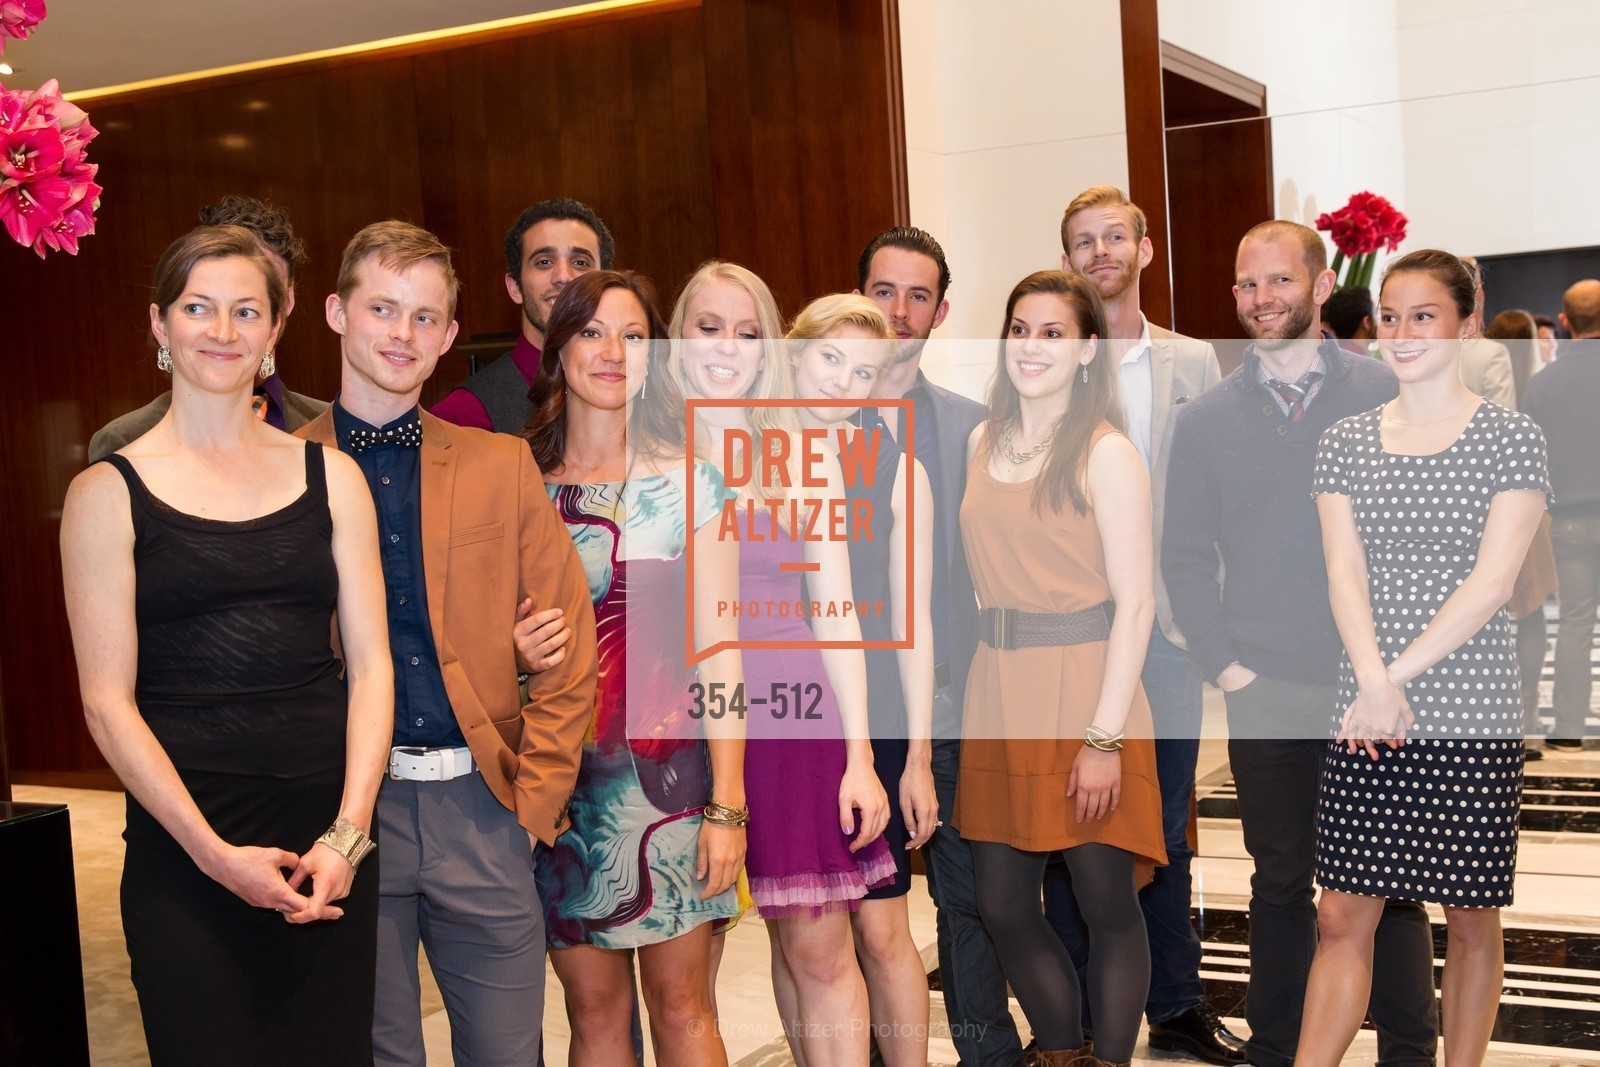 Jane Rehm, Christian Squires, Eduardo Permuy, Erica Chipp, Nicole Haskins, Erica Felsch, Ben Needham-Wood, Susan Roemer, Josh Reynolds, Aidan DeYoung, Terez Dean, GRAFF Celebrates SMUIN BALLET, US. 237 Post Street SF, April 9th, 2014,Drew Altizer, Drew Altizer Photography, full-service agency, private events, San Francisco photographer, photographer california